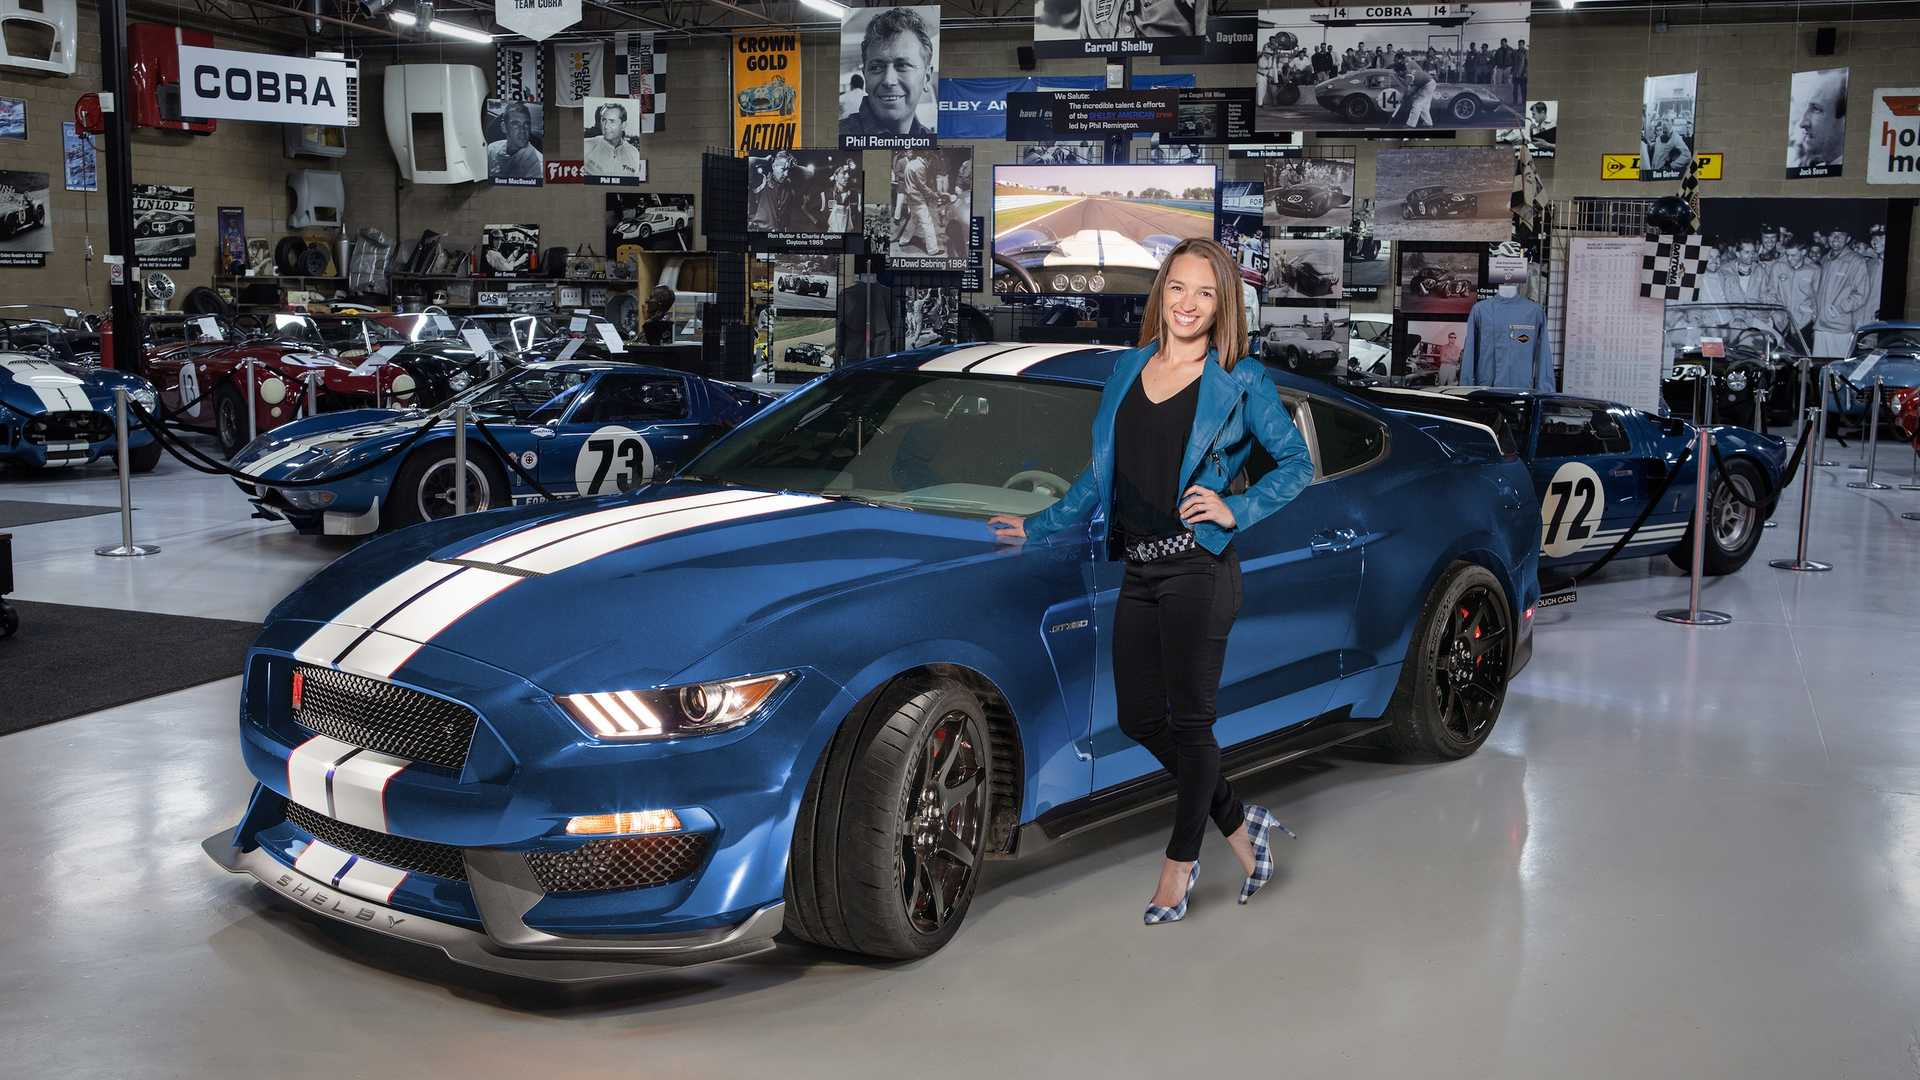 Last Chance To Win A 2019 Shelby GT350R!